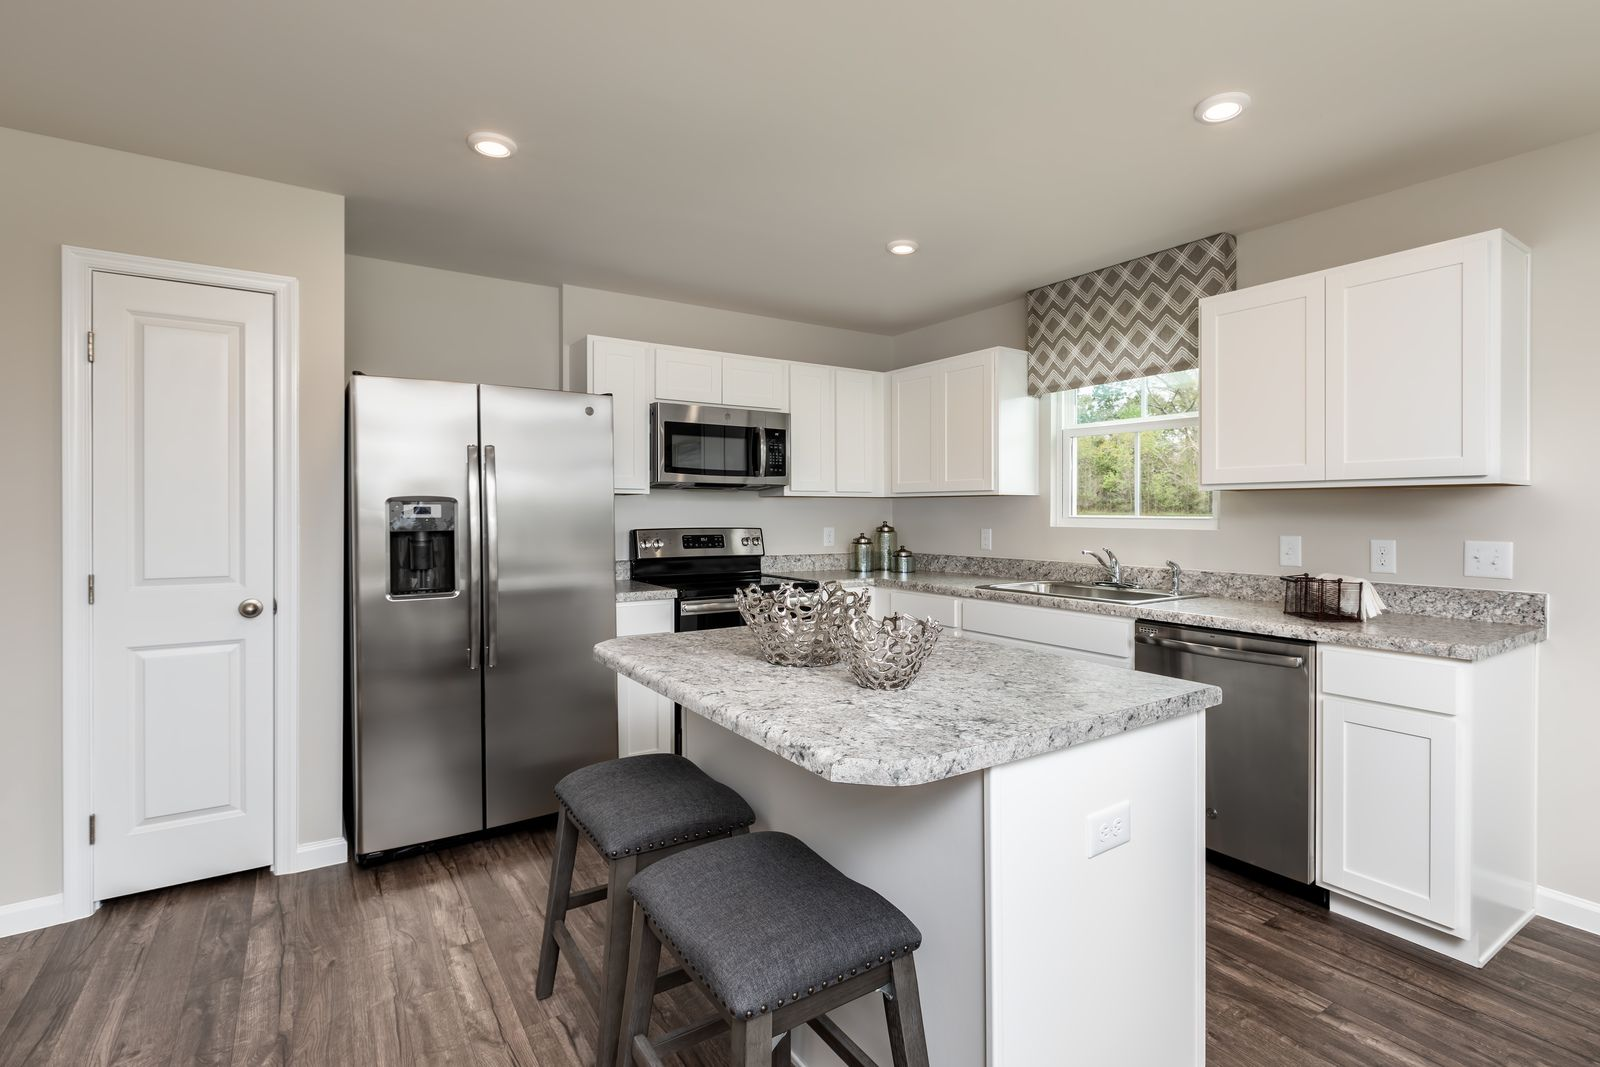 Kitchen featured in the Spruce By Ryan Homes in Columbia, SC